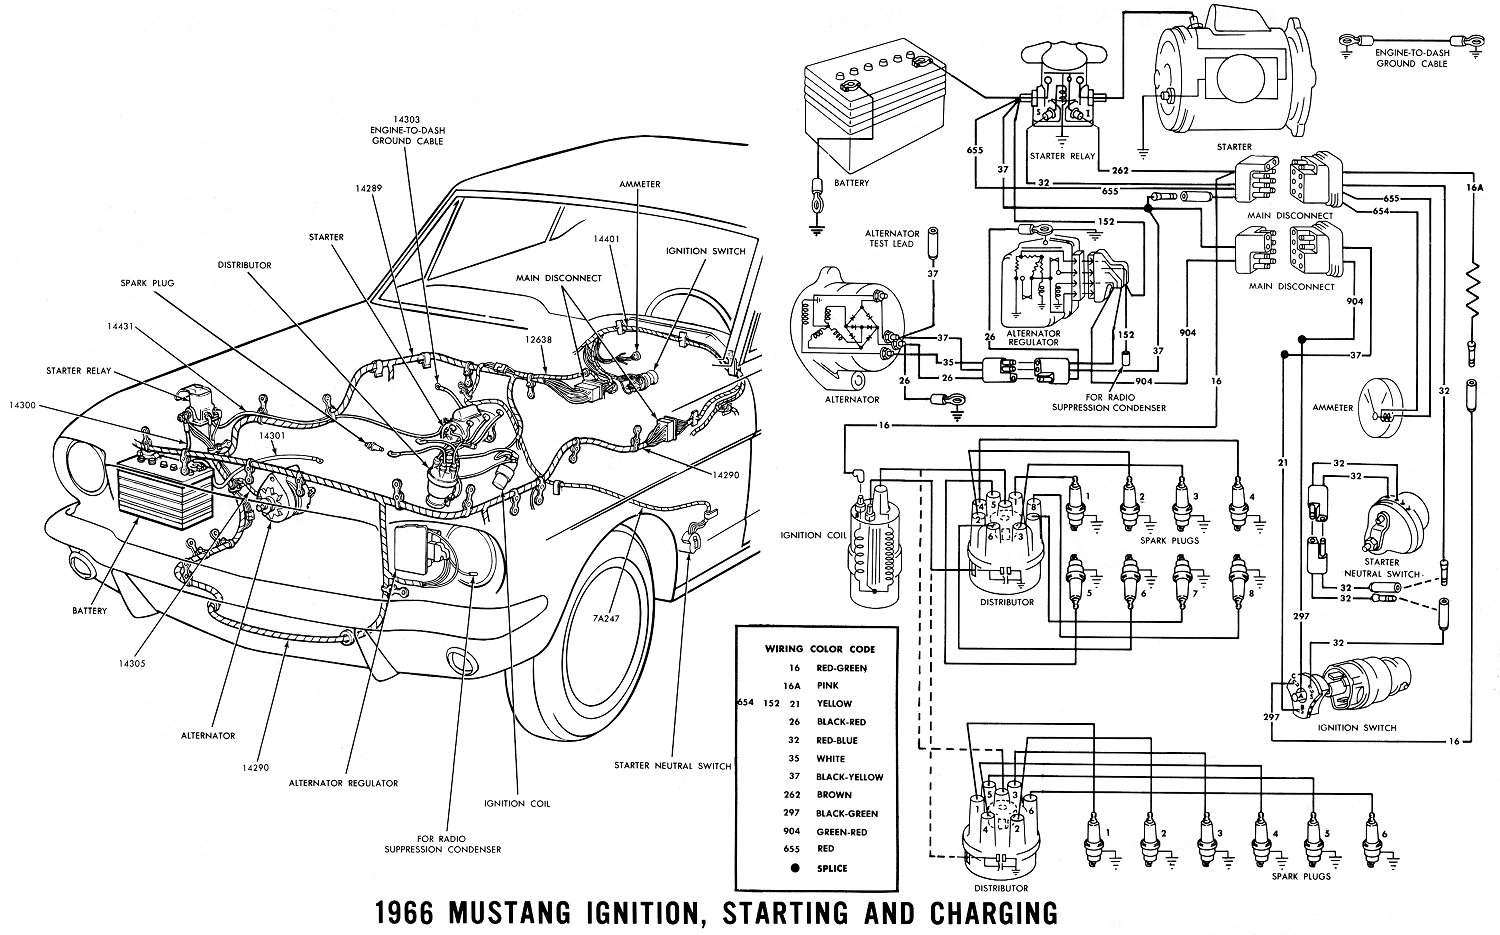 66ignit 1966 mustang wiring diagrams average joe restoration 1968 mustang ignition wiring diagram at n-0.co